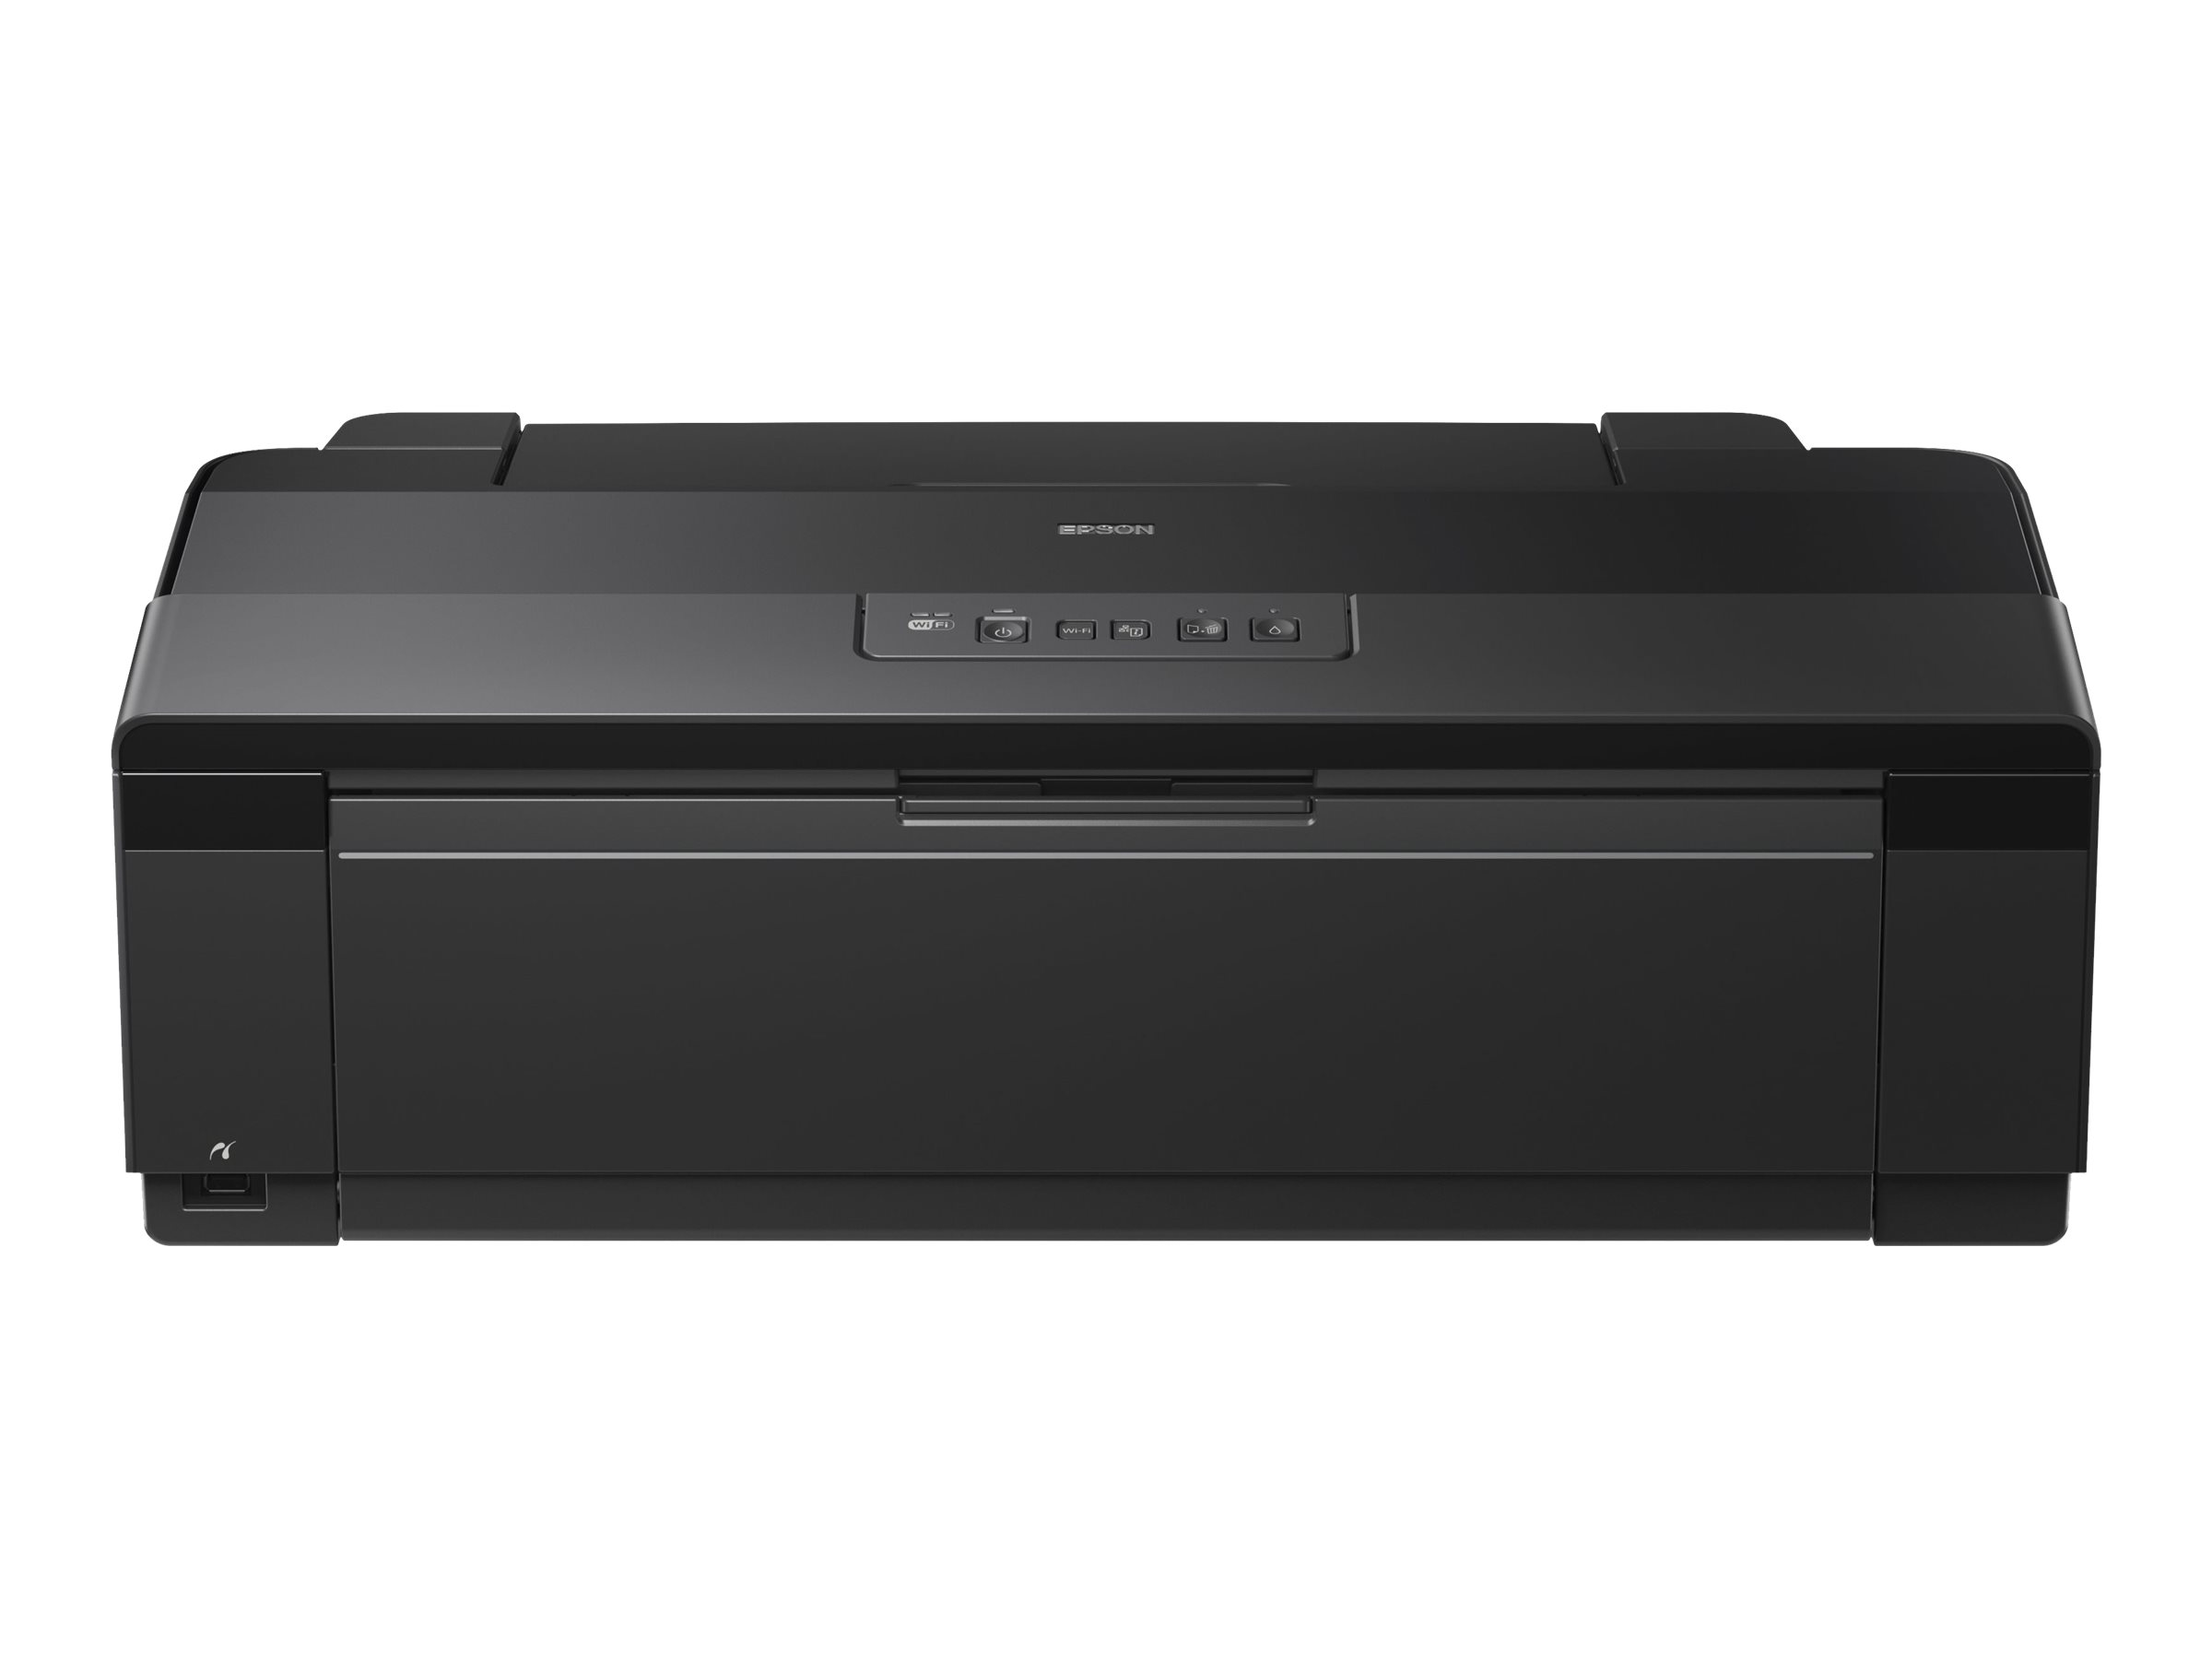 Epson Stylus Photo 1500W - imprimante - couleur - jet d'encre